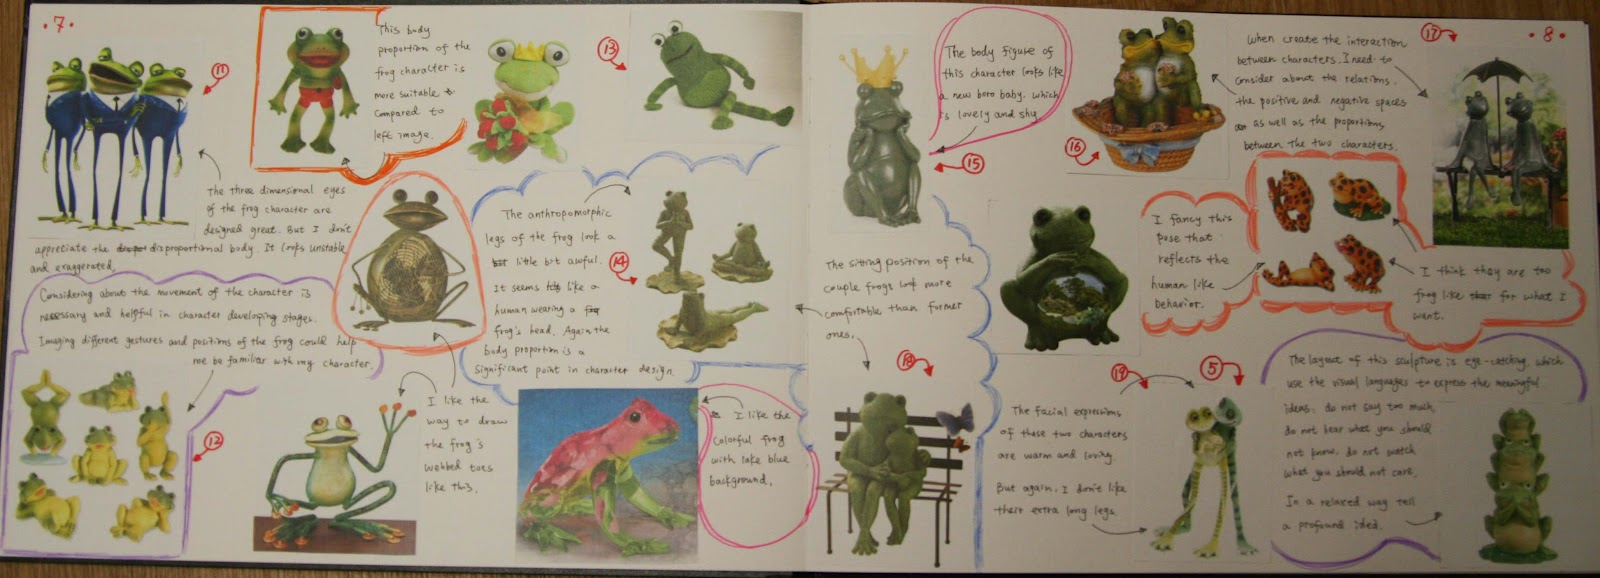 Character Design Principles : Illustration design the research of frog character